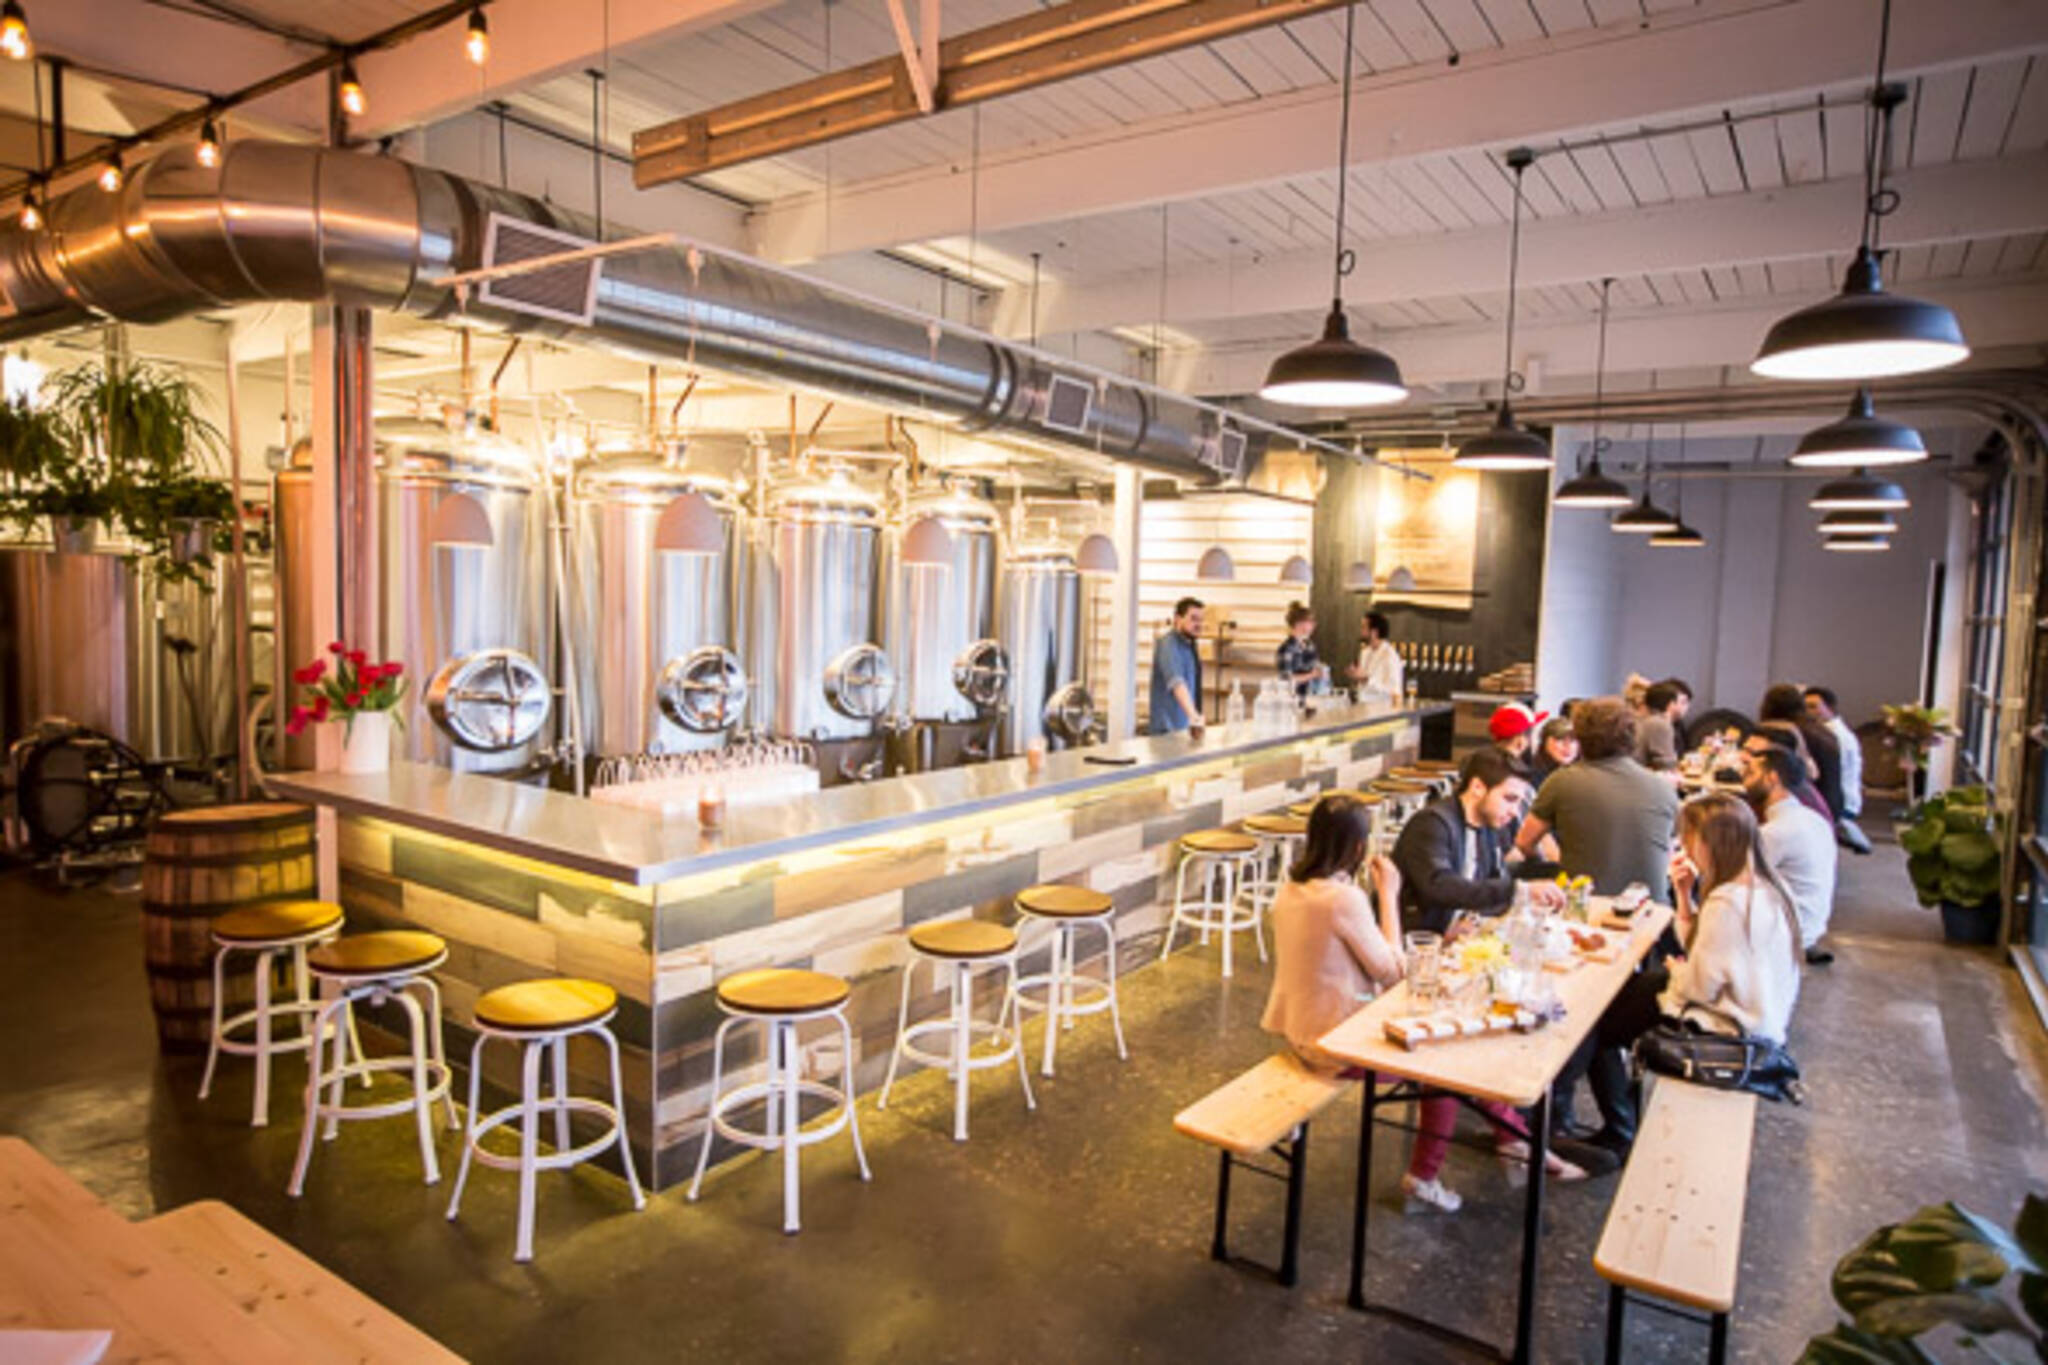 The Best Microbrewery In Toronto